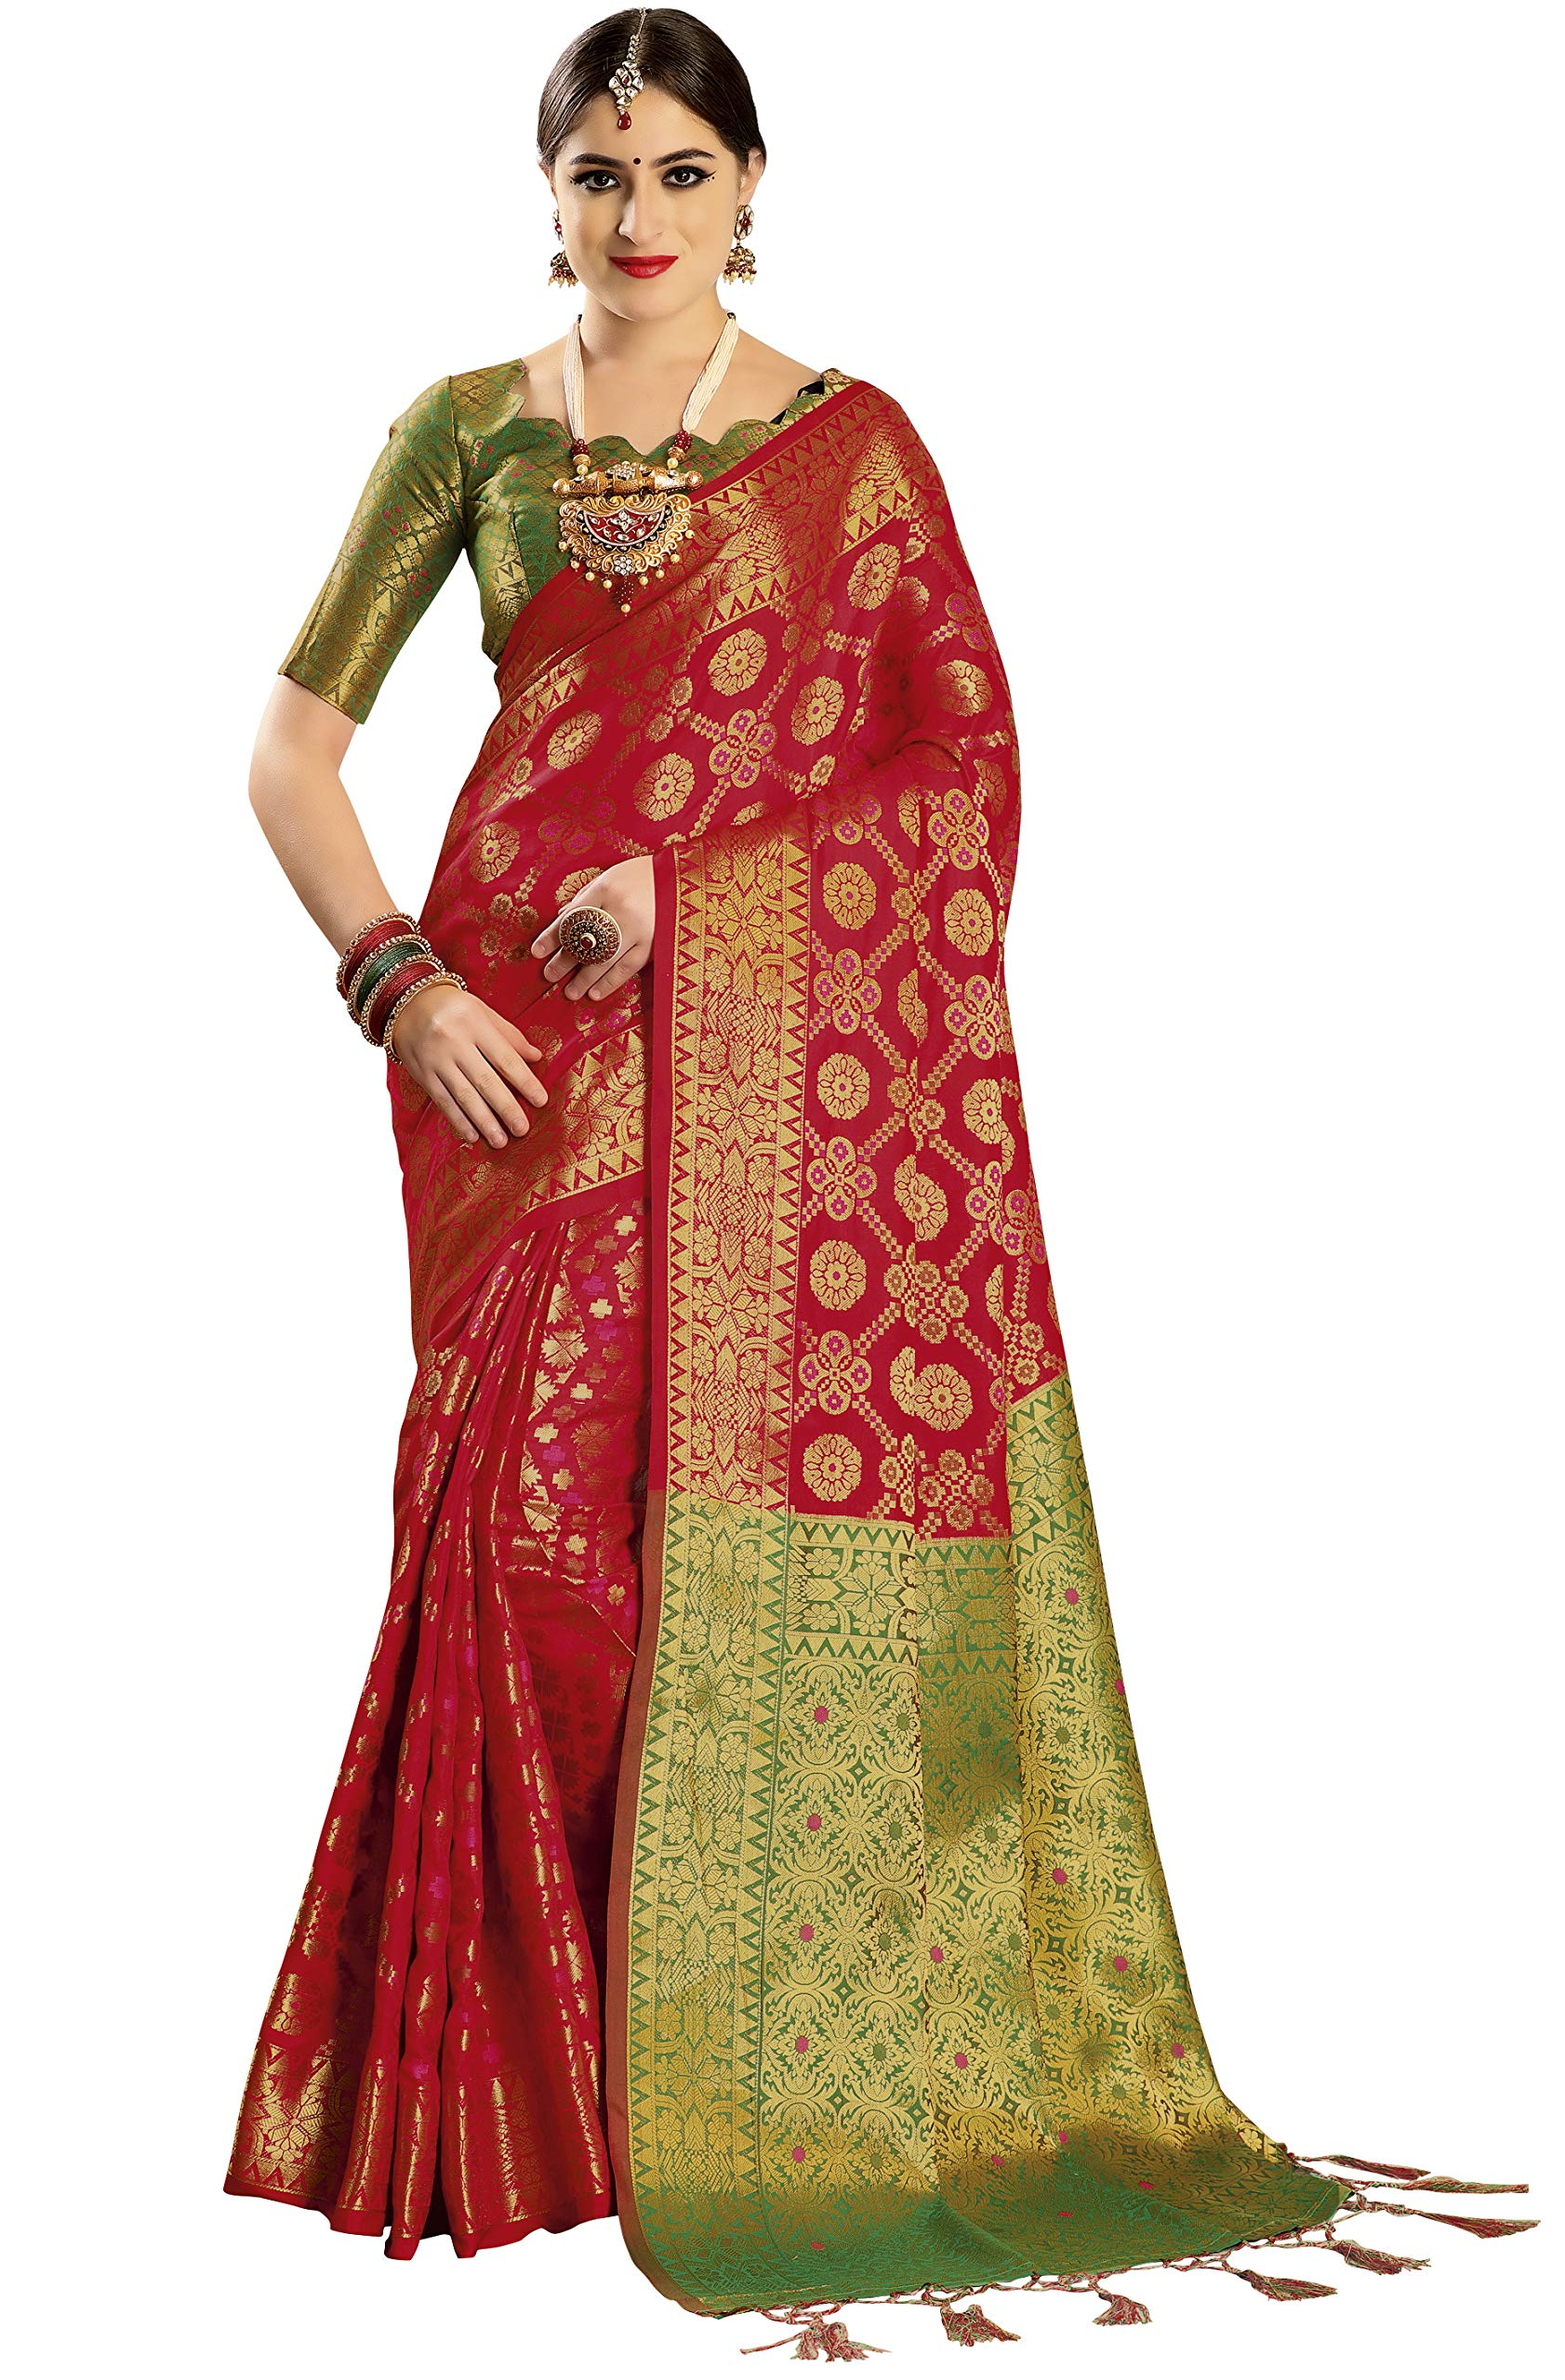 930dd1d74586e8 EthnicJunction Patola Design Double Ikat Wovening Saree With ...